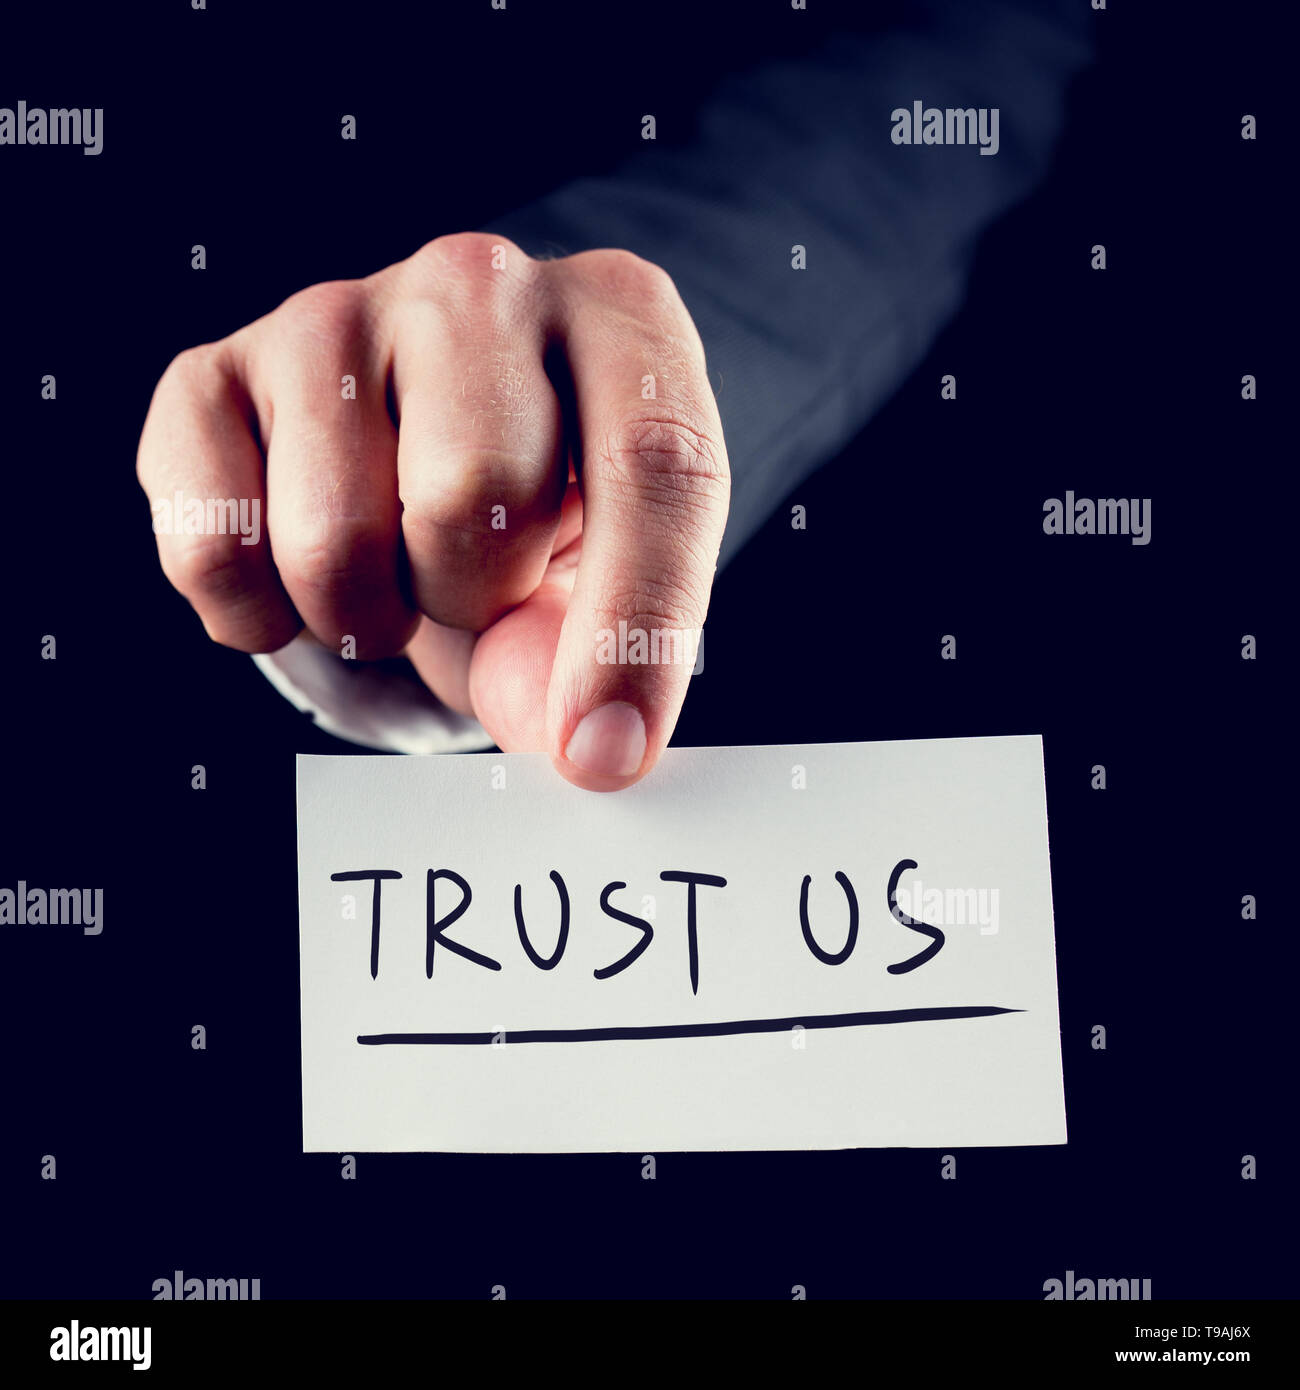 Retro style image of a hand holding piece of paper up close with TRUST US written on it - Stock Image